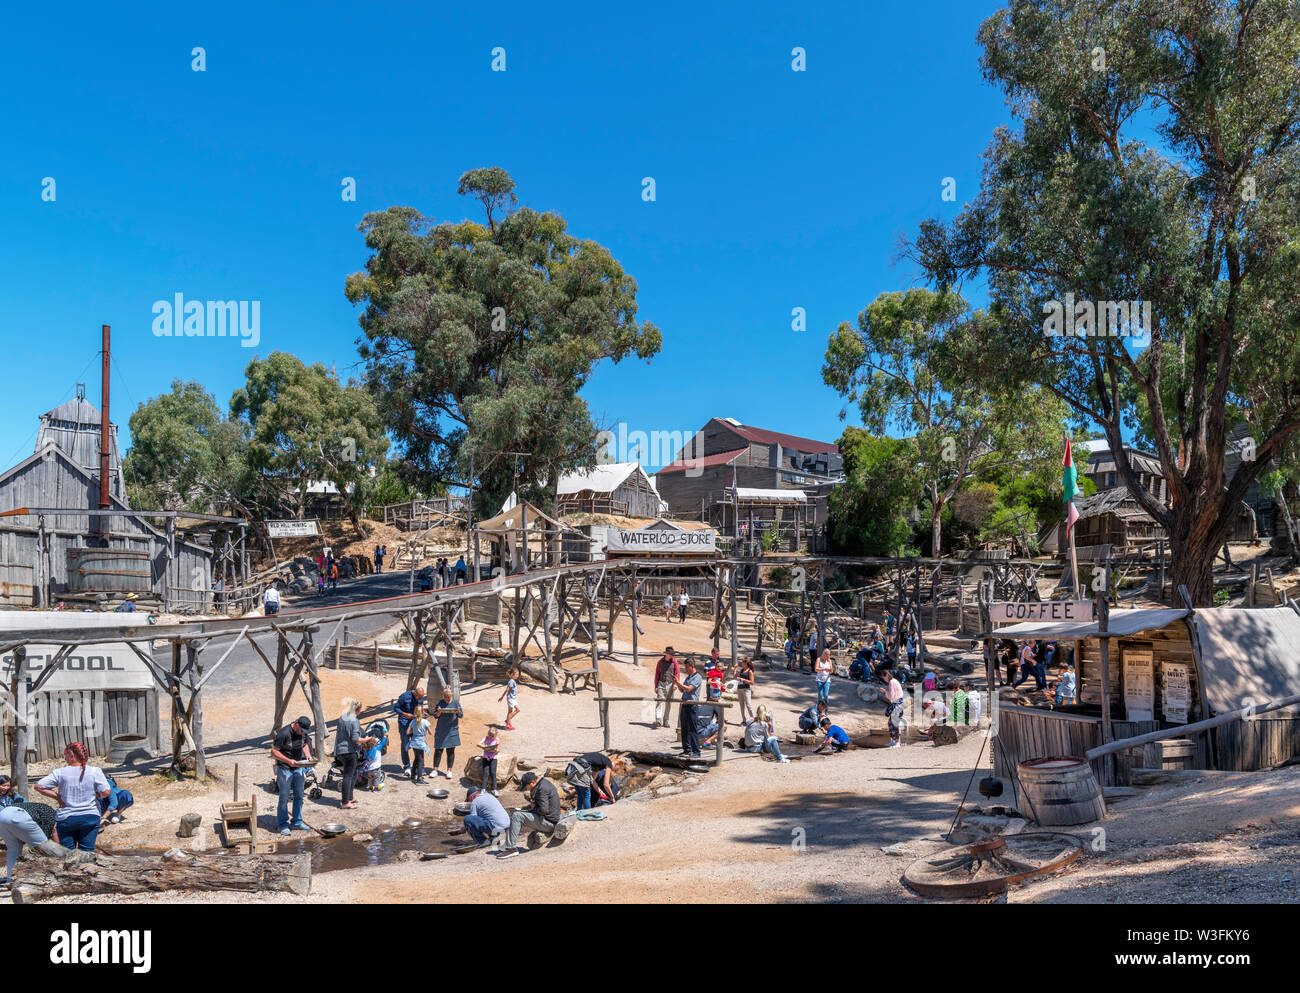 Visitors panning for gold at Sovereign Hill, an open air museum in the old gold mining town of Ballarat, Victoria, Australia - Stock Image